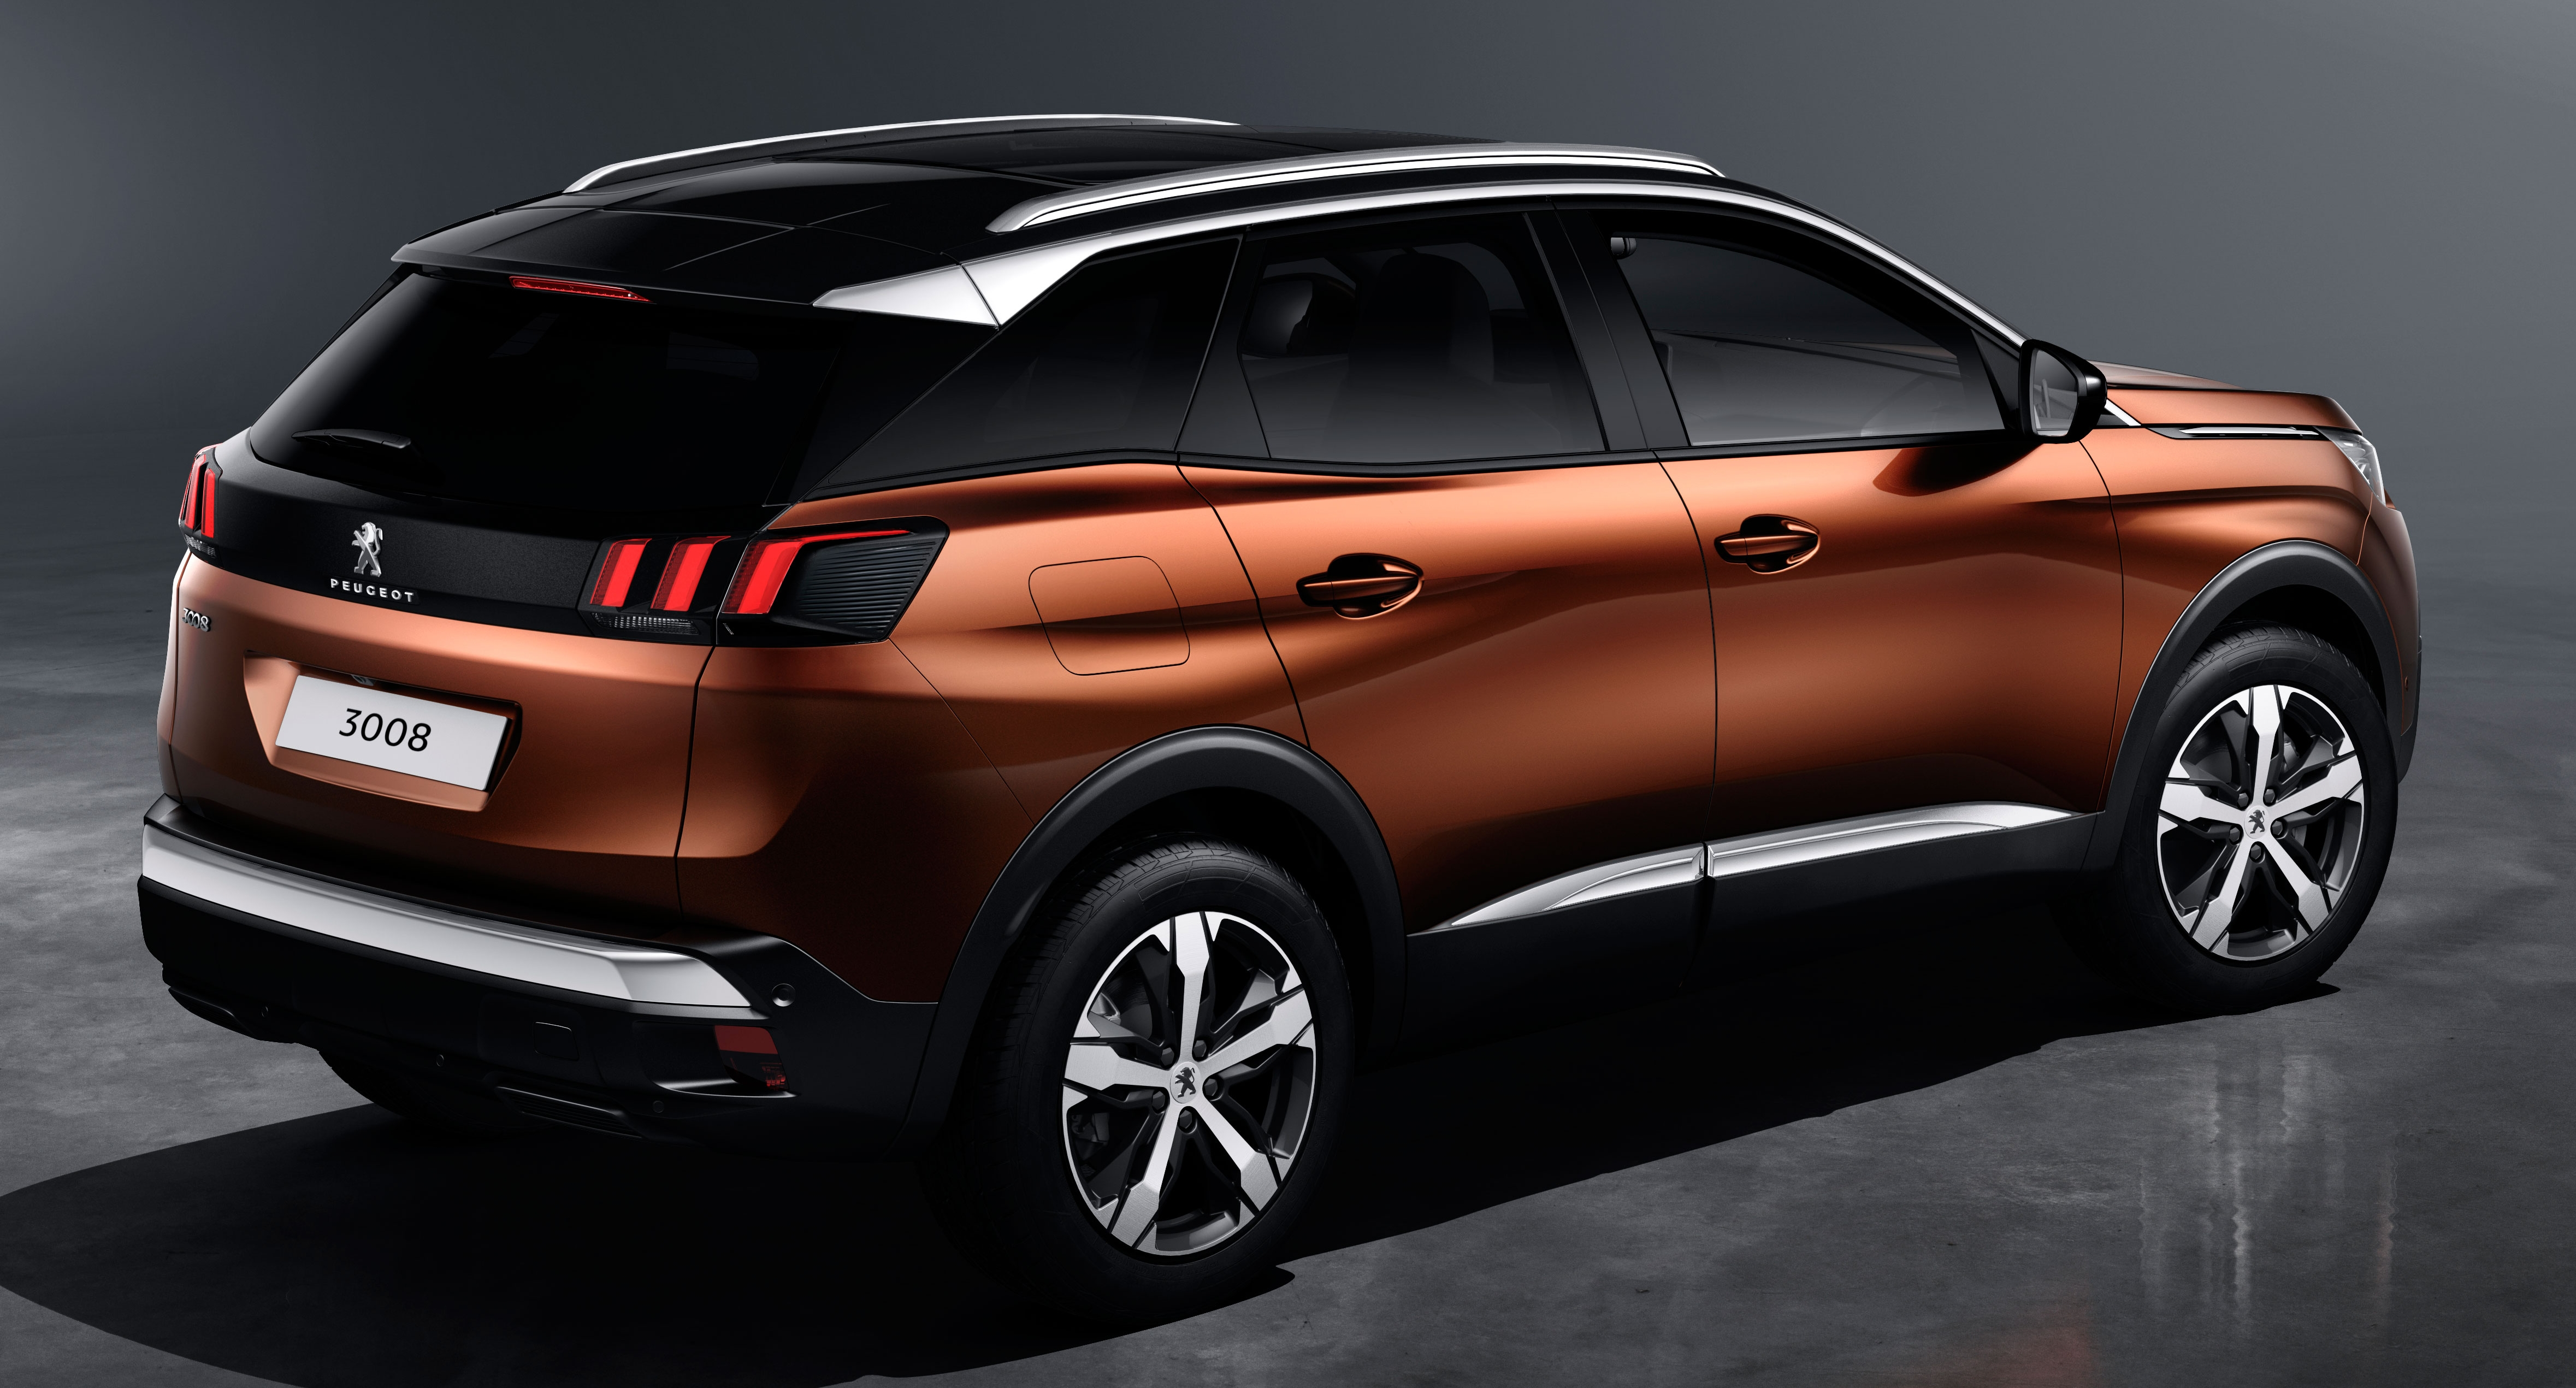 Suv >> Peugeot 3008 – second-gen SUV debuts in Paris Paul Tan - Image 497477